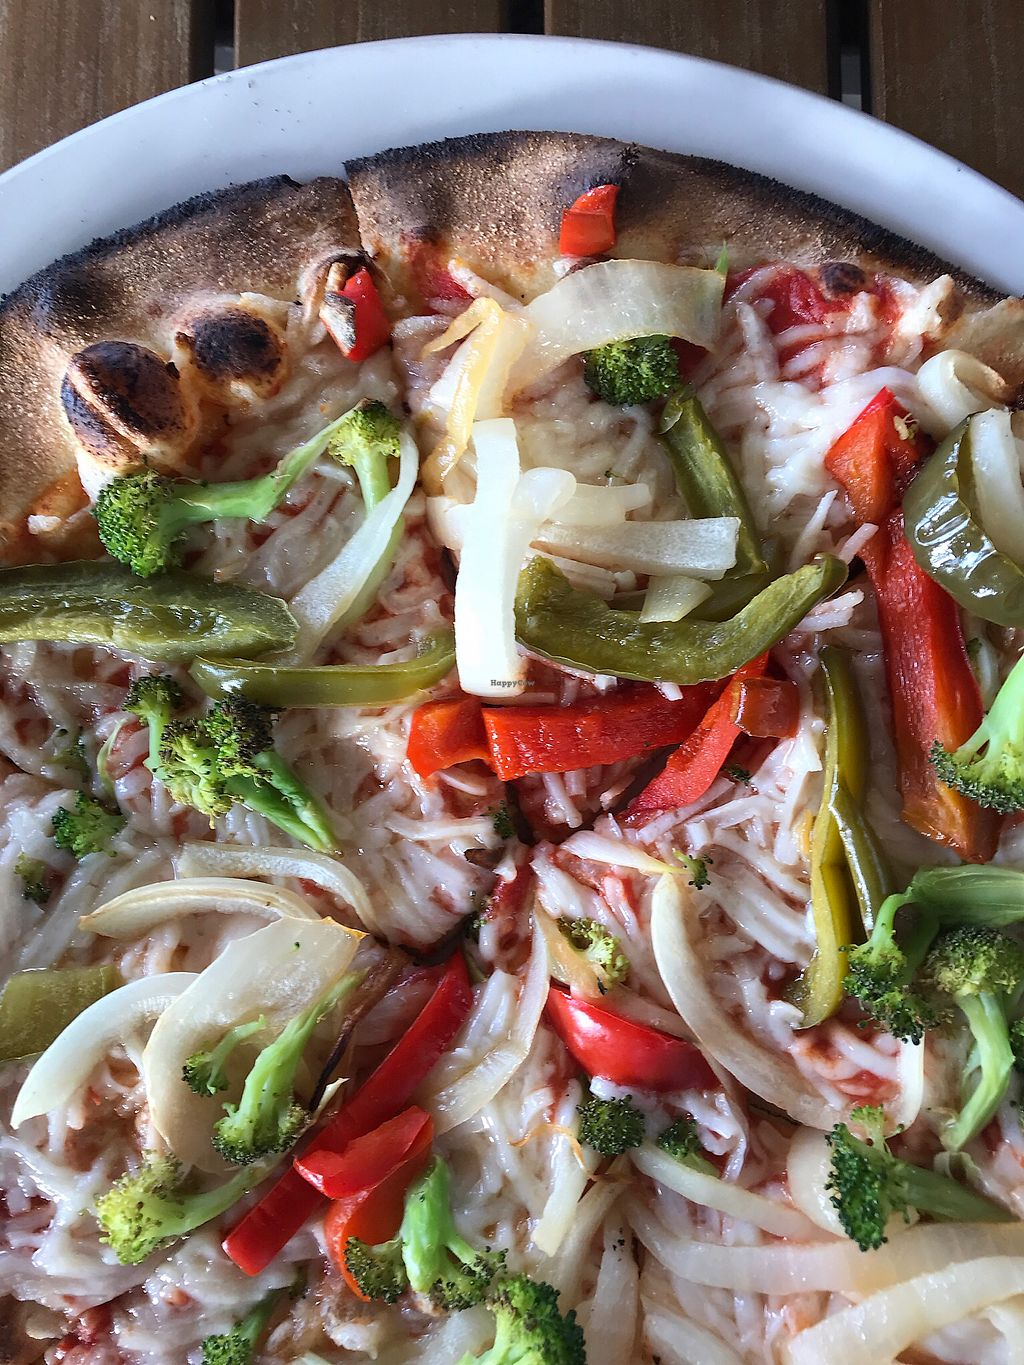 "Photo of Brixx Wood Fired Pizza  by <a href=""/members/profile/jenvth"">jenvth</a> <br/>Wood fired veggie made vegan - no mushrooms  <br/> April 6, 2018  - <a href='/contact/abuse/image/114570/381724'>Report</a>"